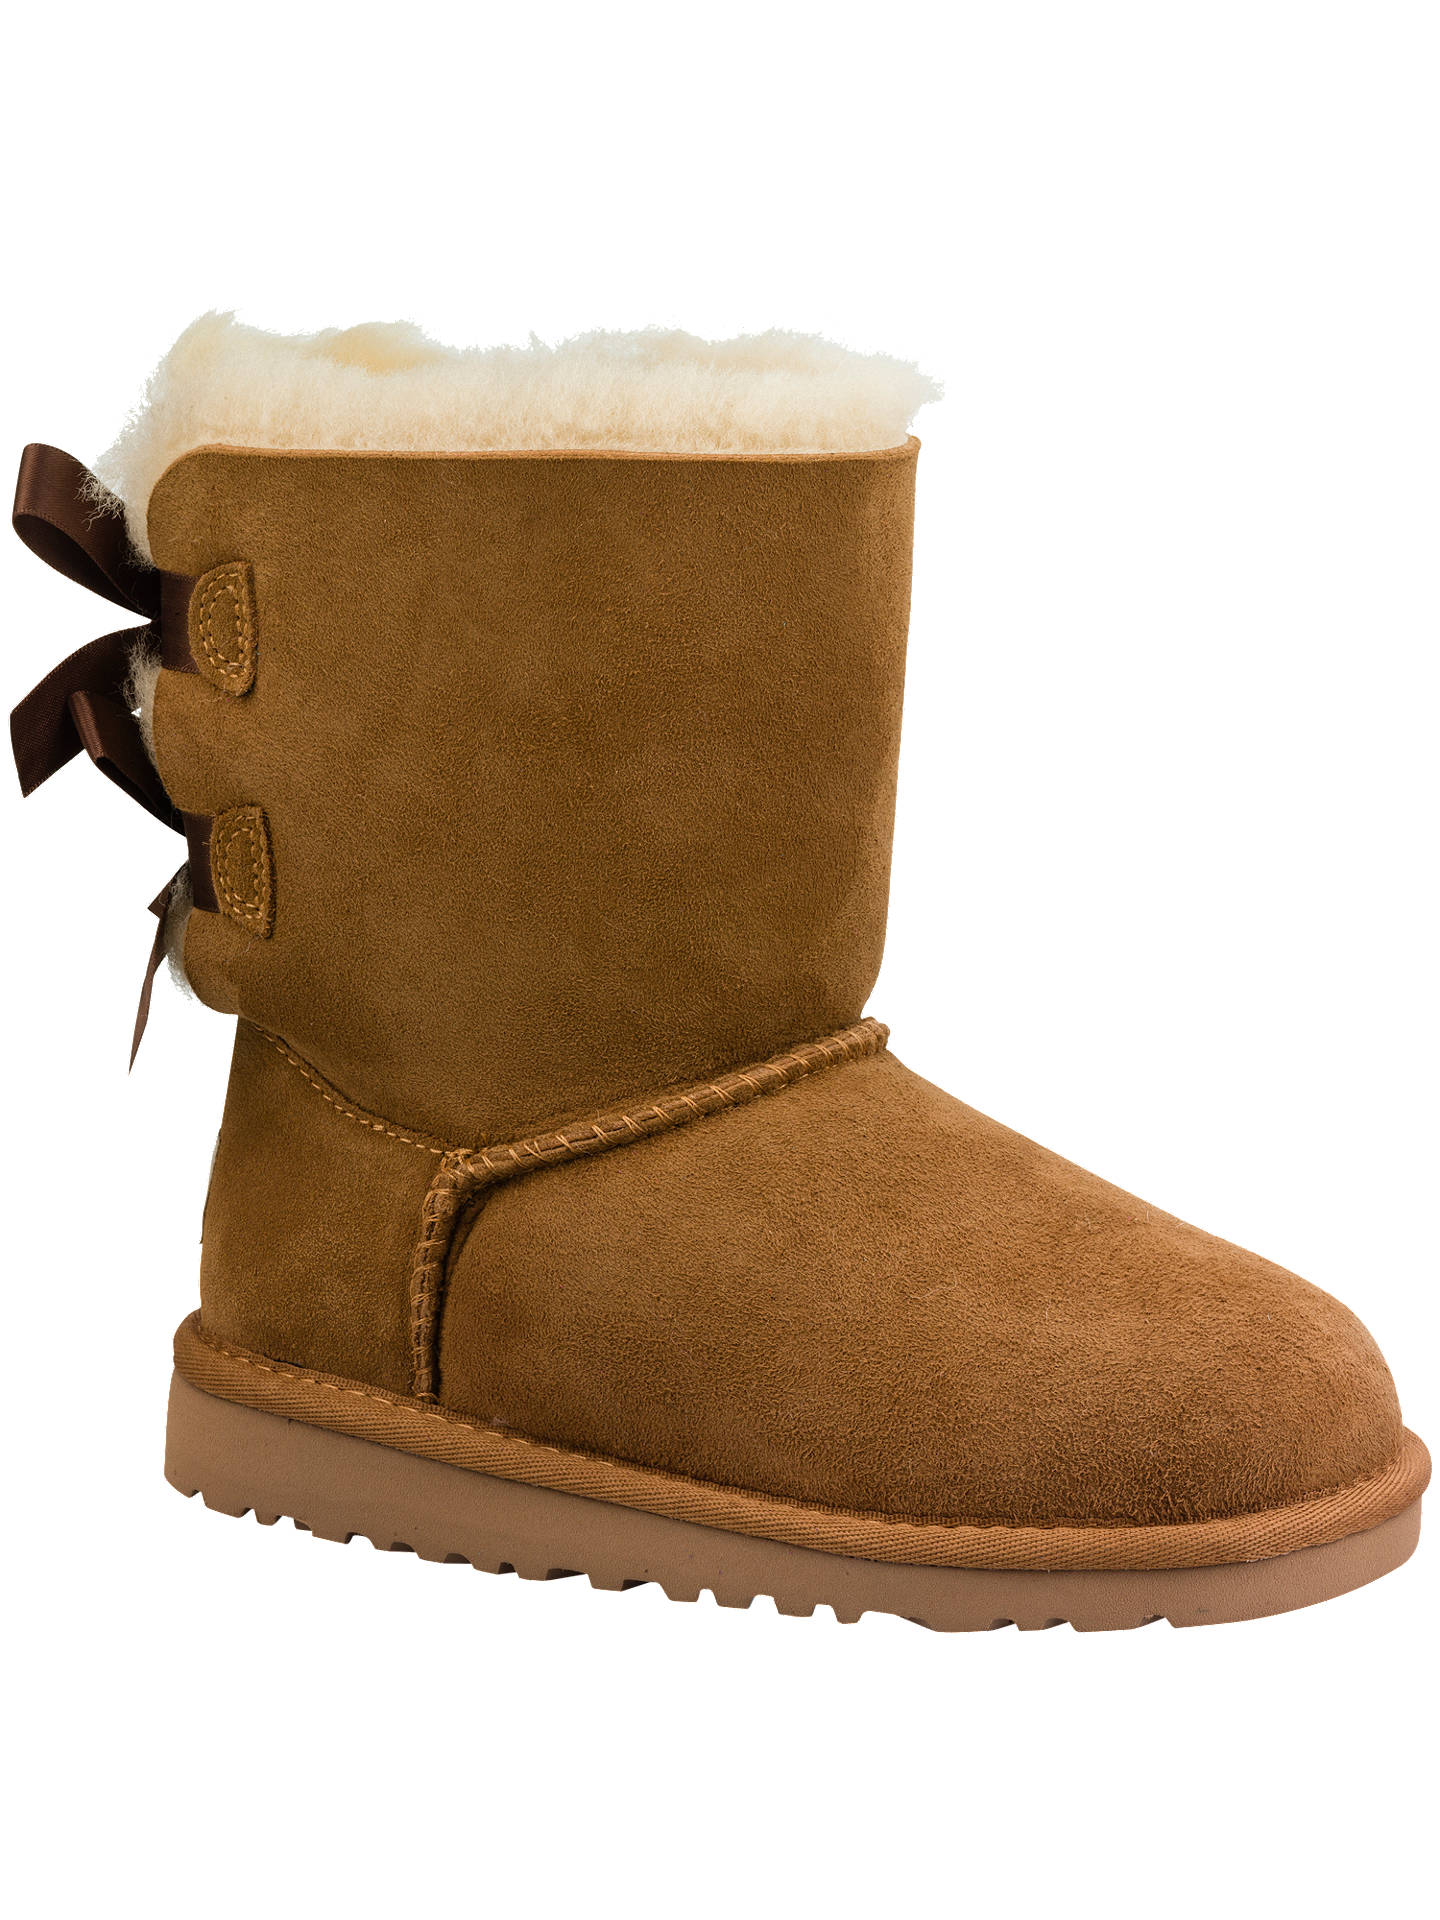 080b7f13c0d UGG Children's Bailey Bow Boots, Chestnut at John Lewis & Partners